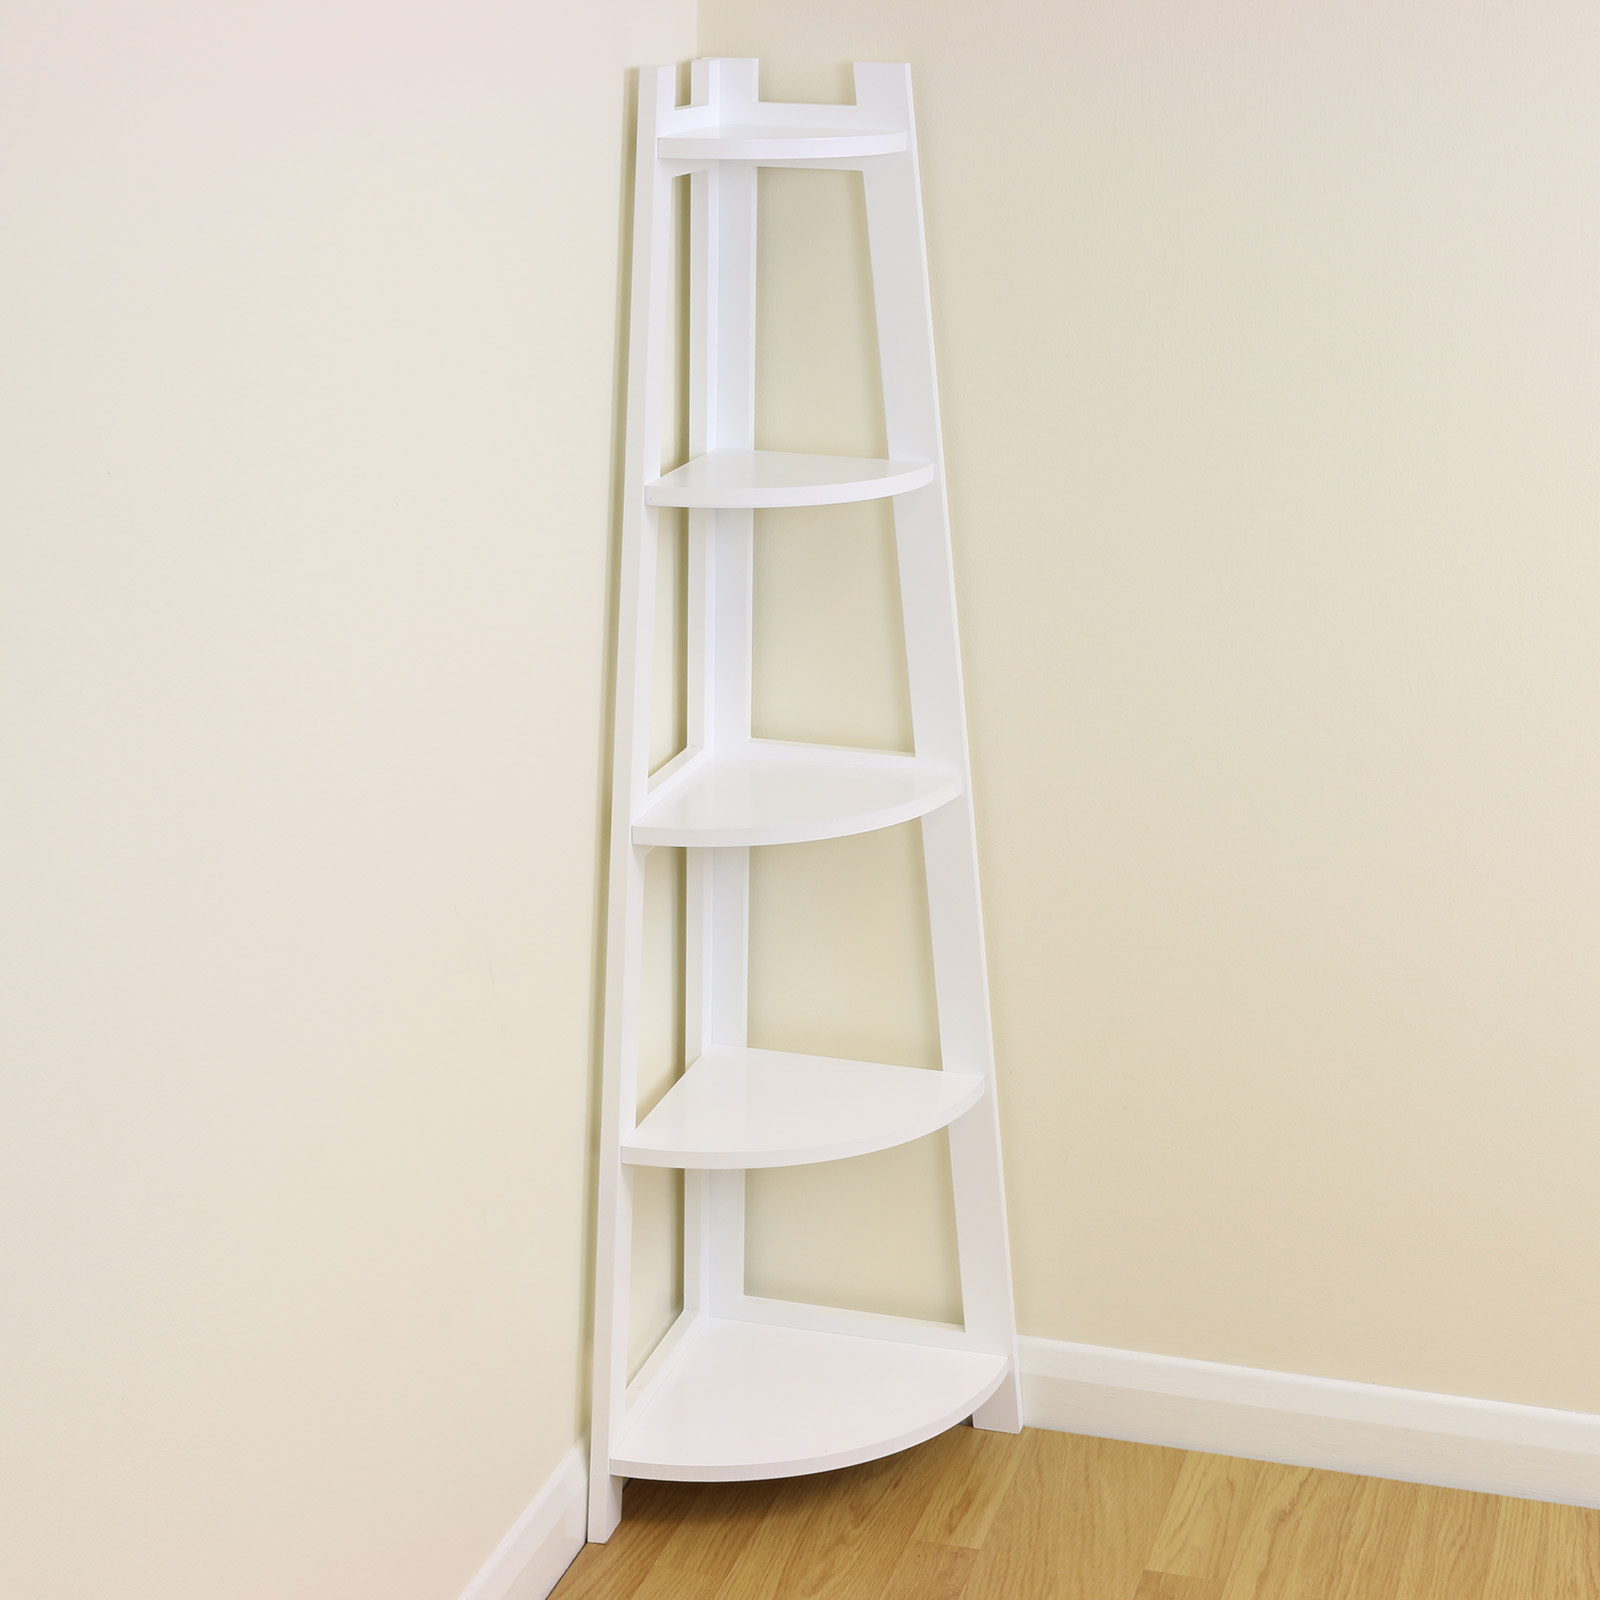 Corner Exhibition Stands Day : White tier tall corner shelf shelving unit display stand